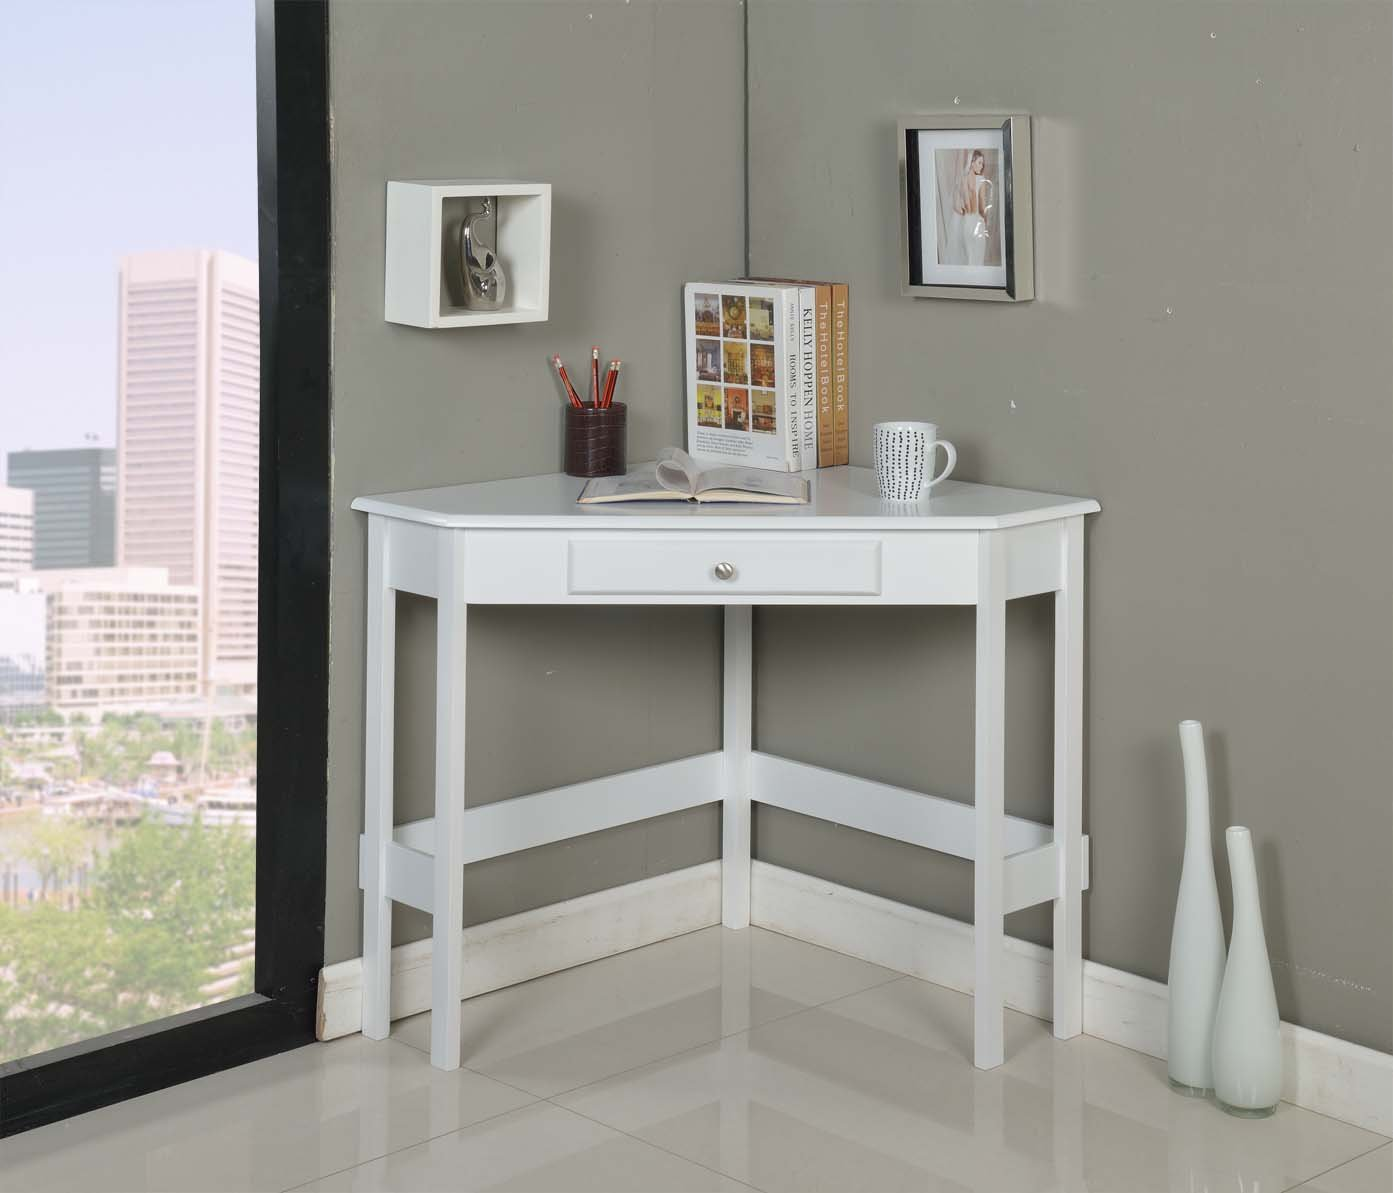 Kings Brand Furniture Wood Corner Desk with Drawer (White) by Kings Brand Furniture